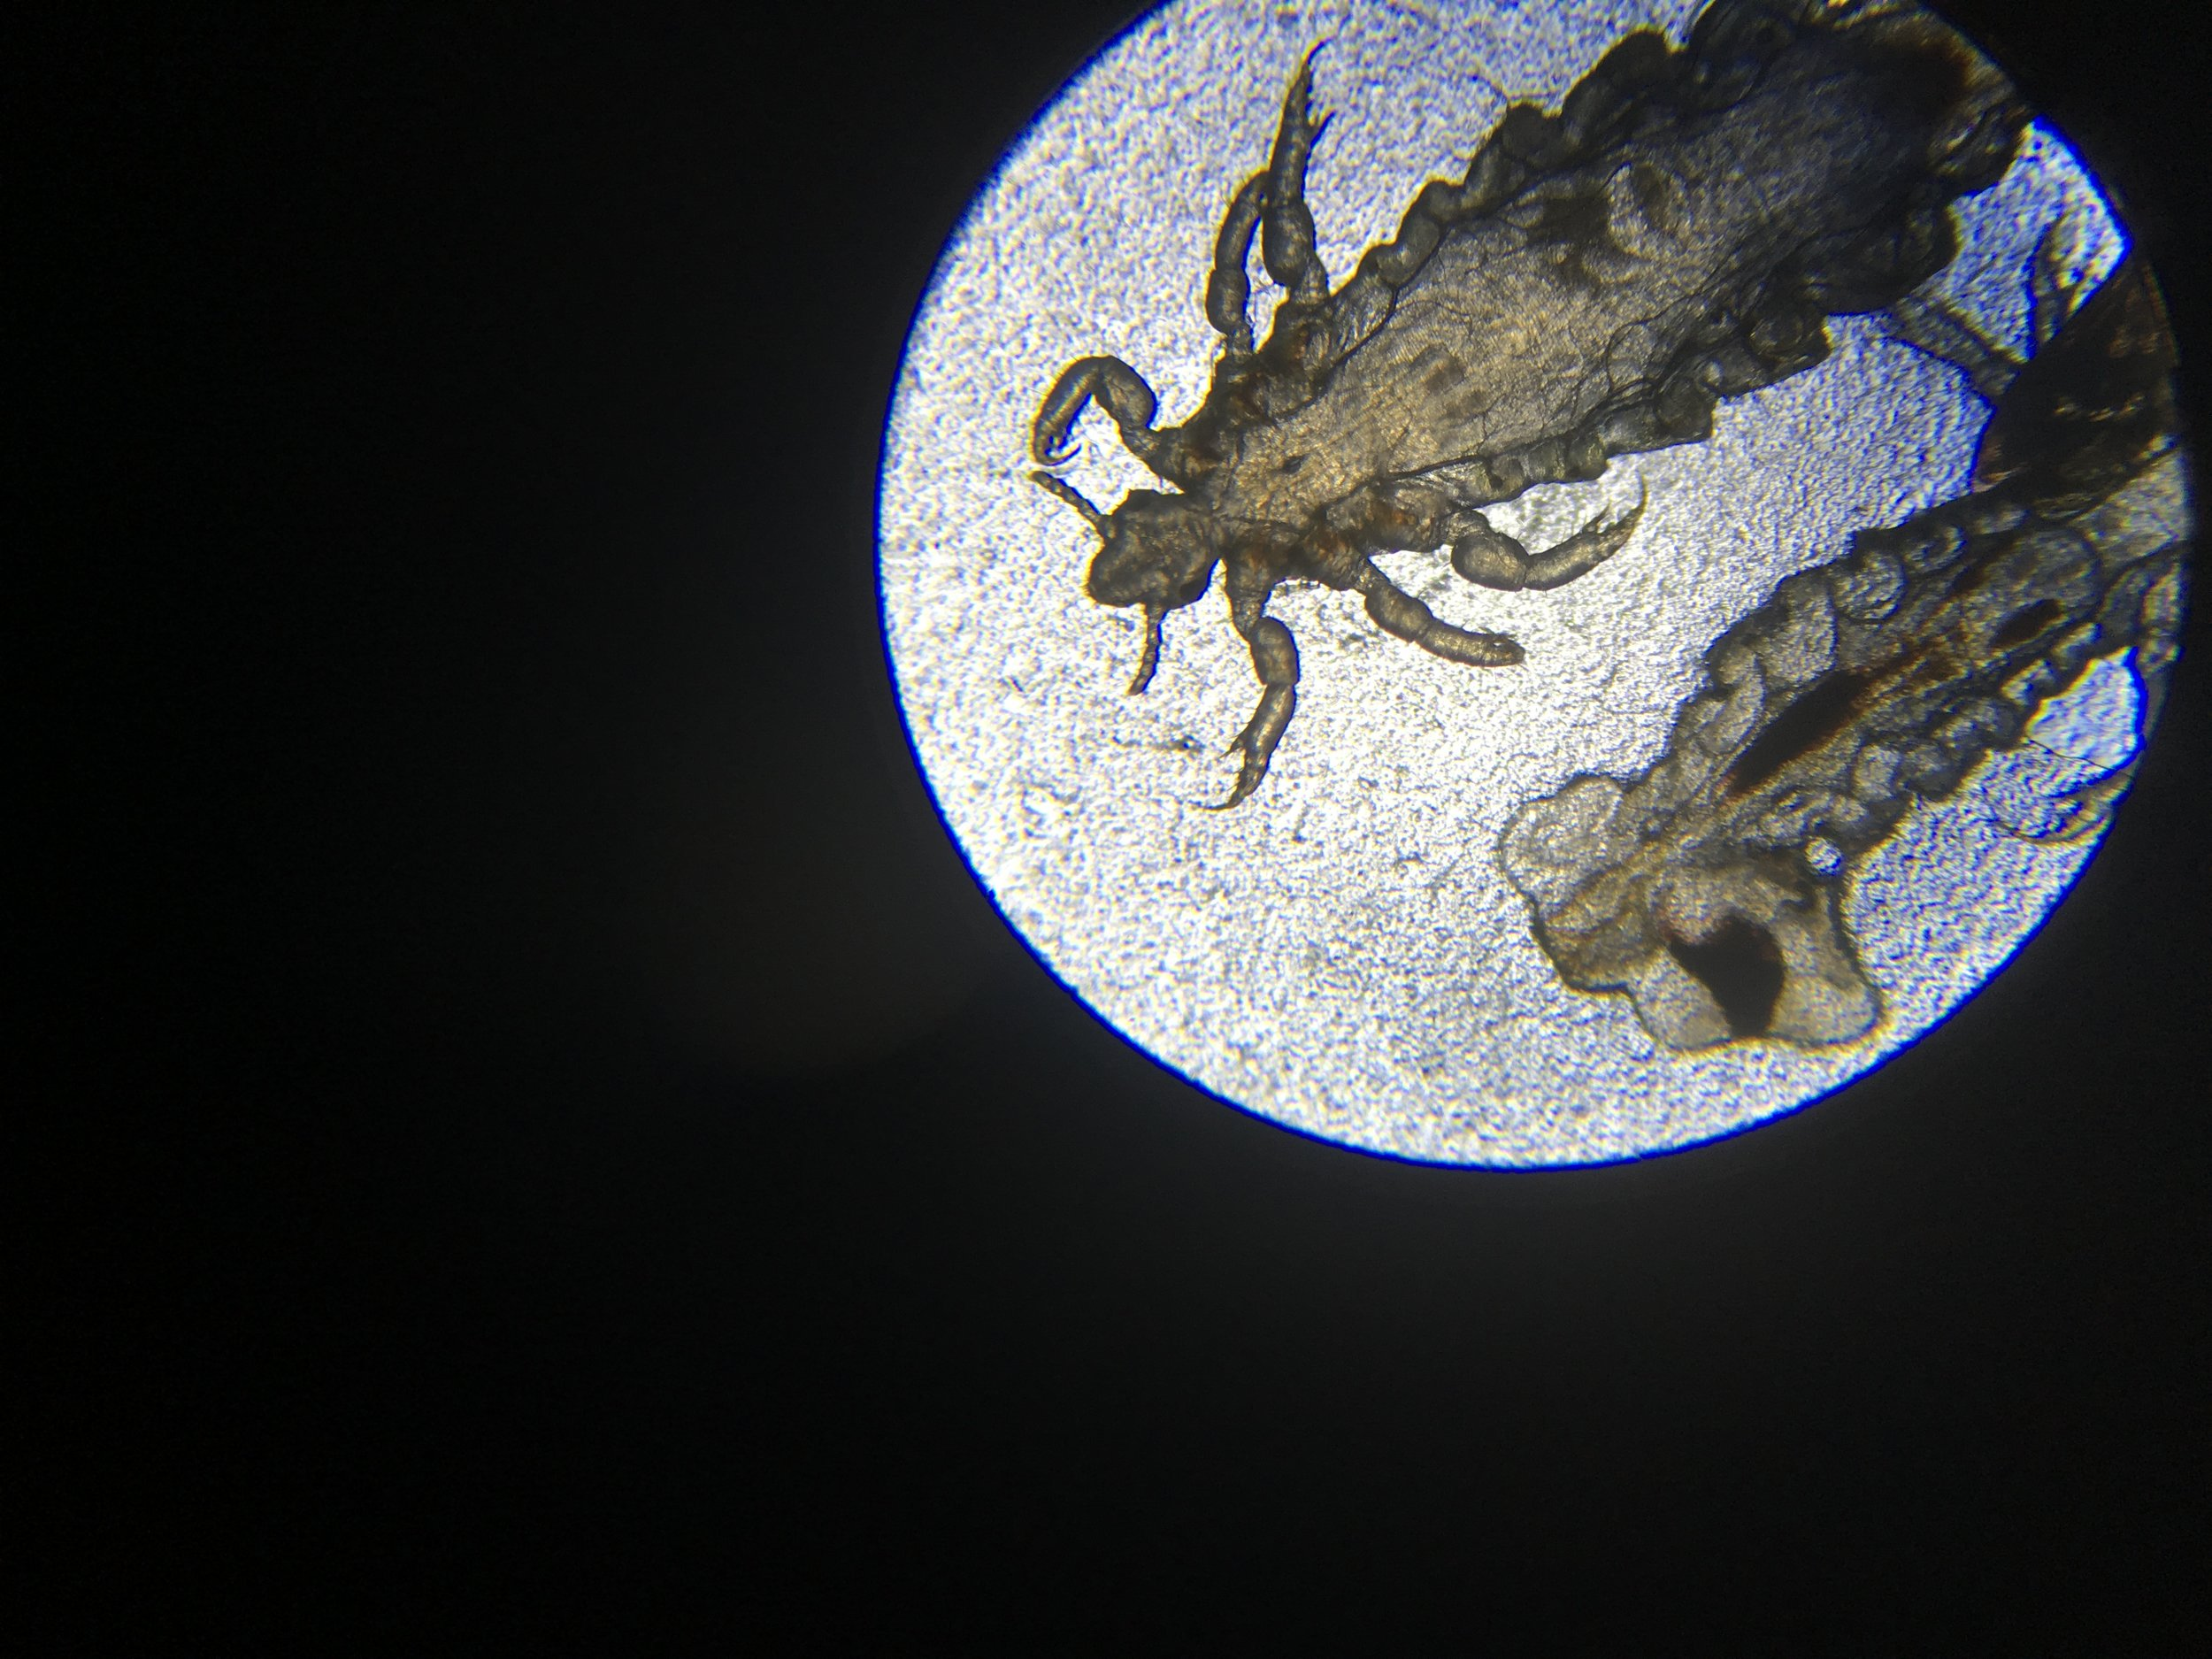 These are OUR personal lice. These came from Collin's head and he took a pic while looking at them through his microscope. They are pretty gross little fellas, aren't they?